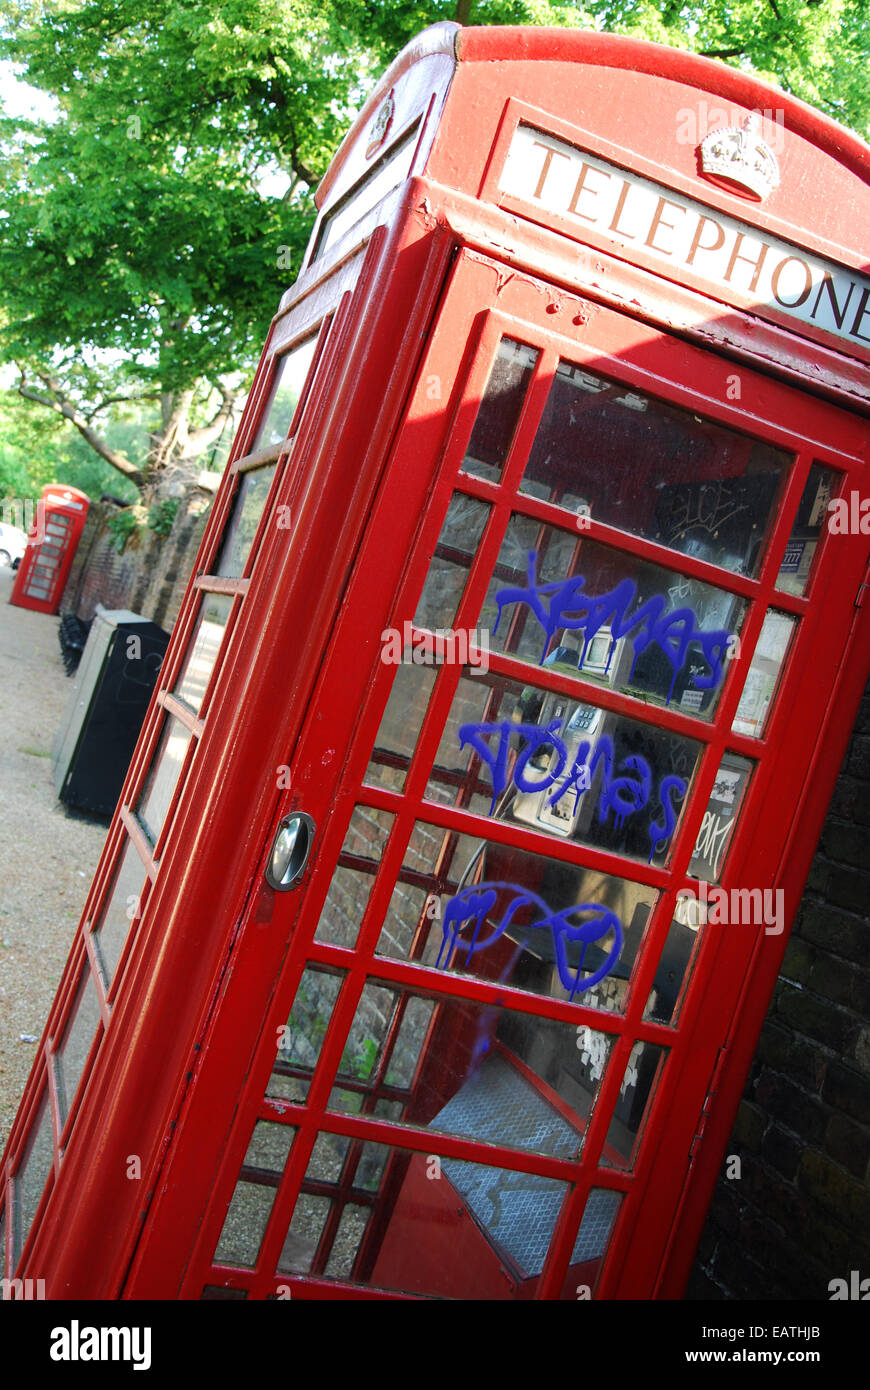 classic red phone boxes In London UK - Stock Image